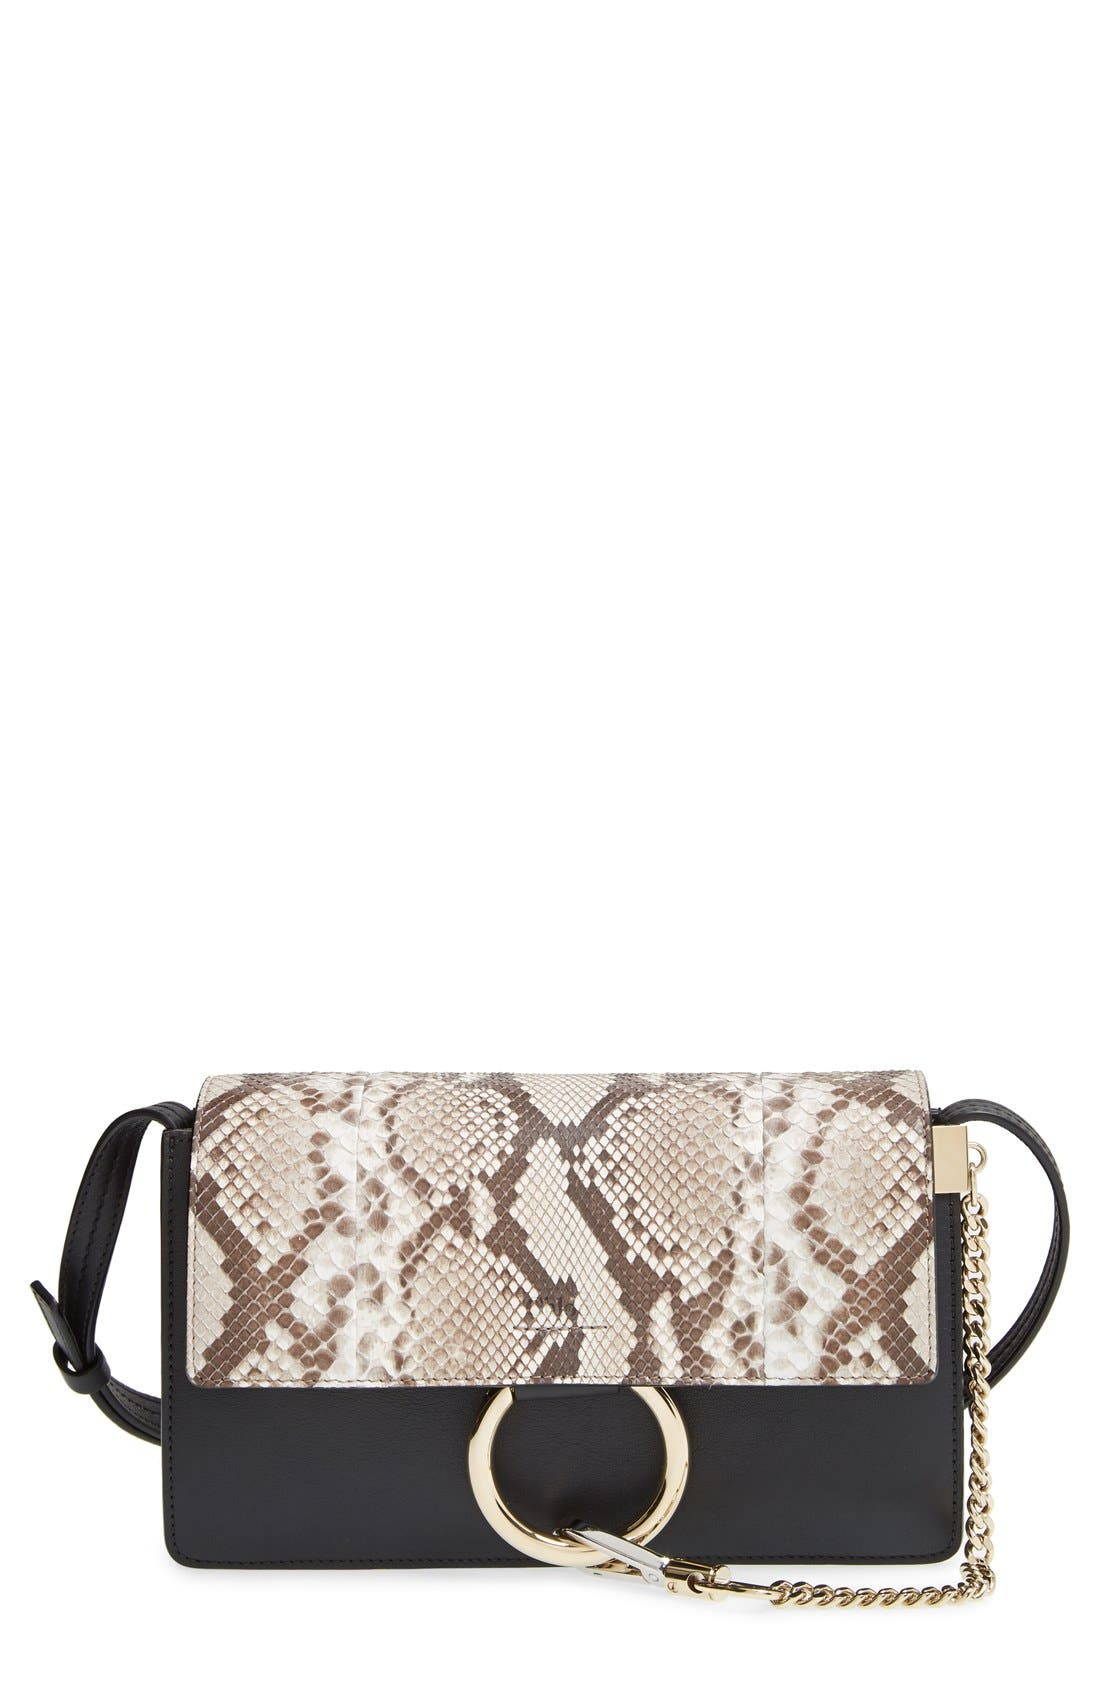 Alternate Image 1 Selected - Chloé 'Small Faye' Genuine Python & Leather Shoulder Bag